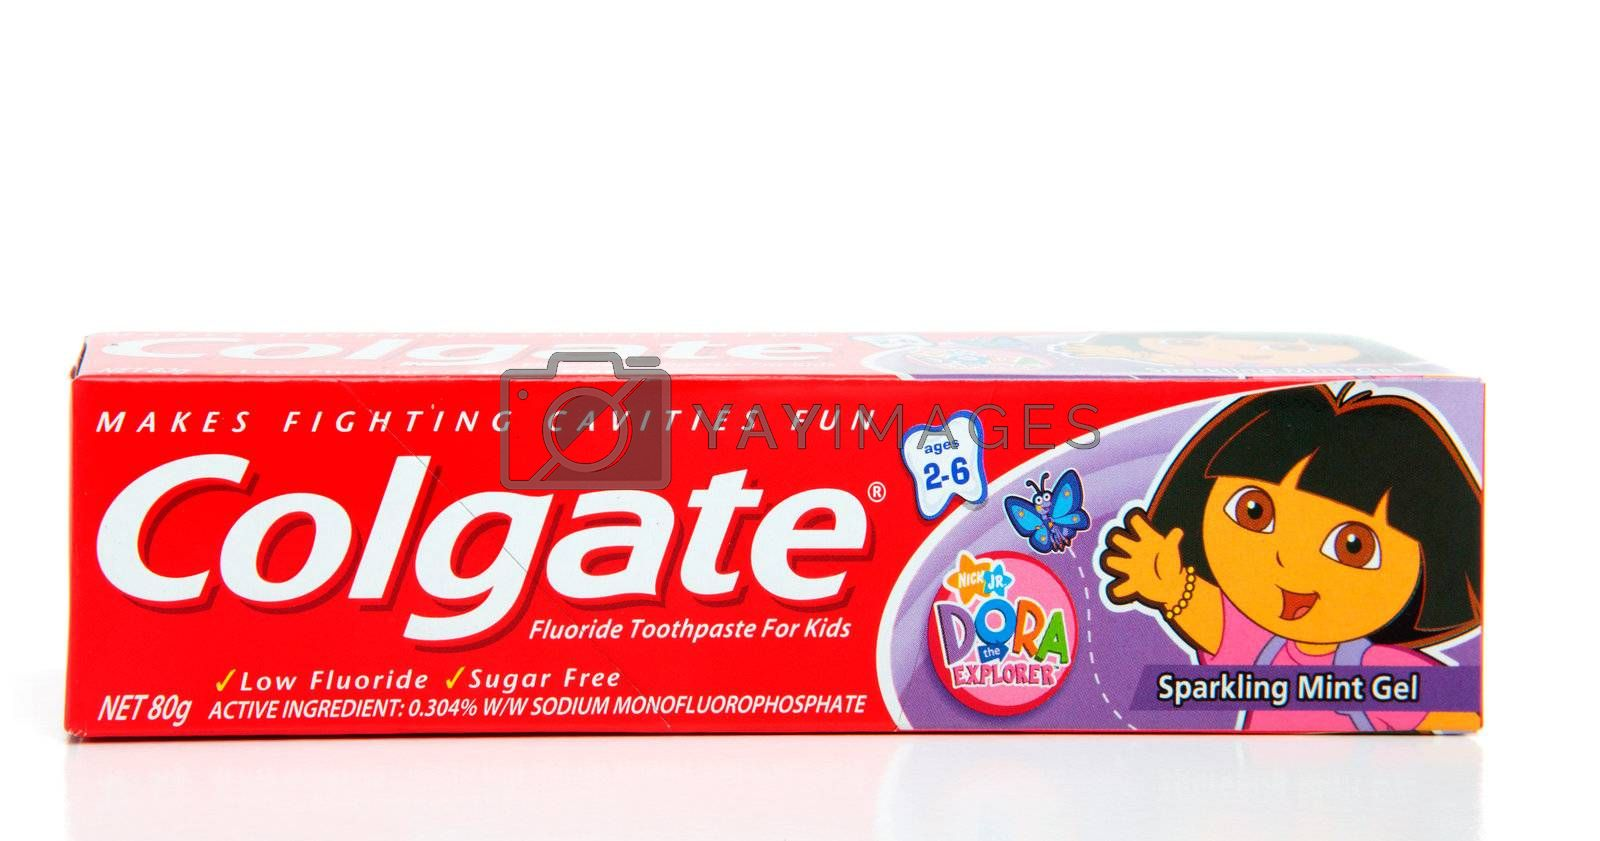 Colgate toothpaste sparkling mint gel for children ages 2 to 6 years old.  Low in fluoride and low in sugar.  White background.  Editorial use only.